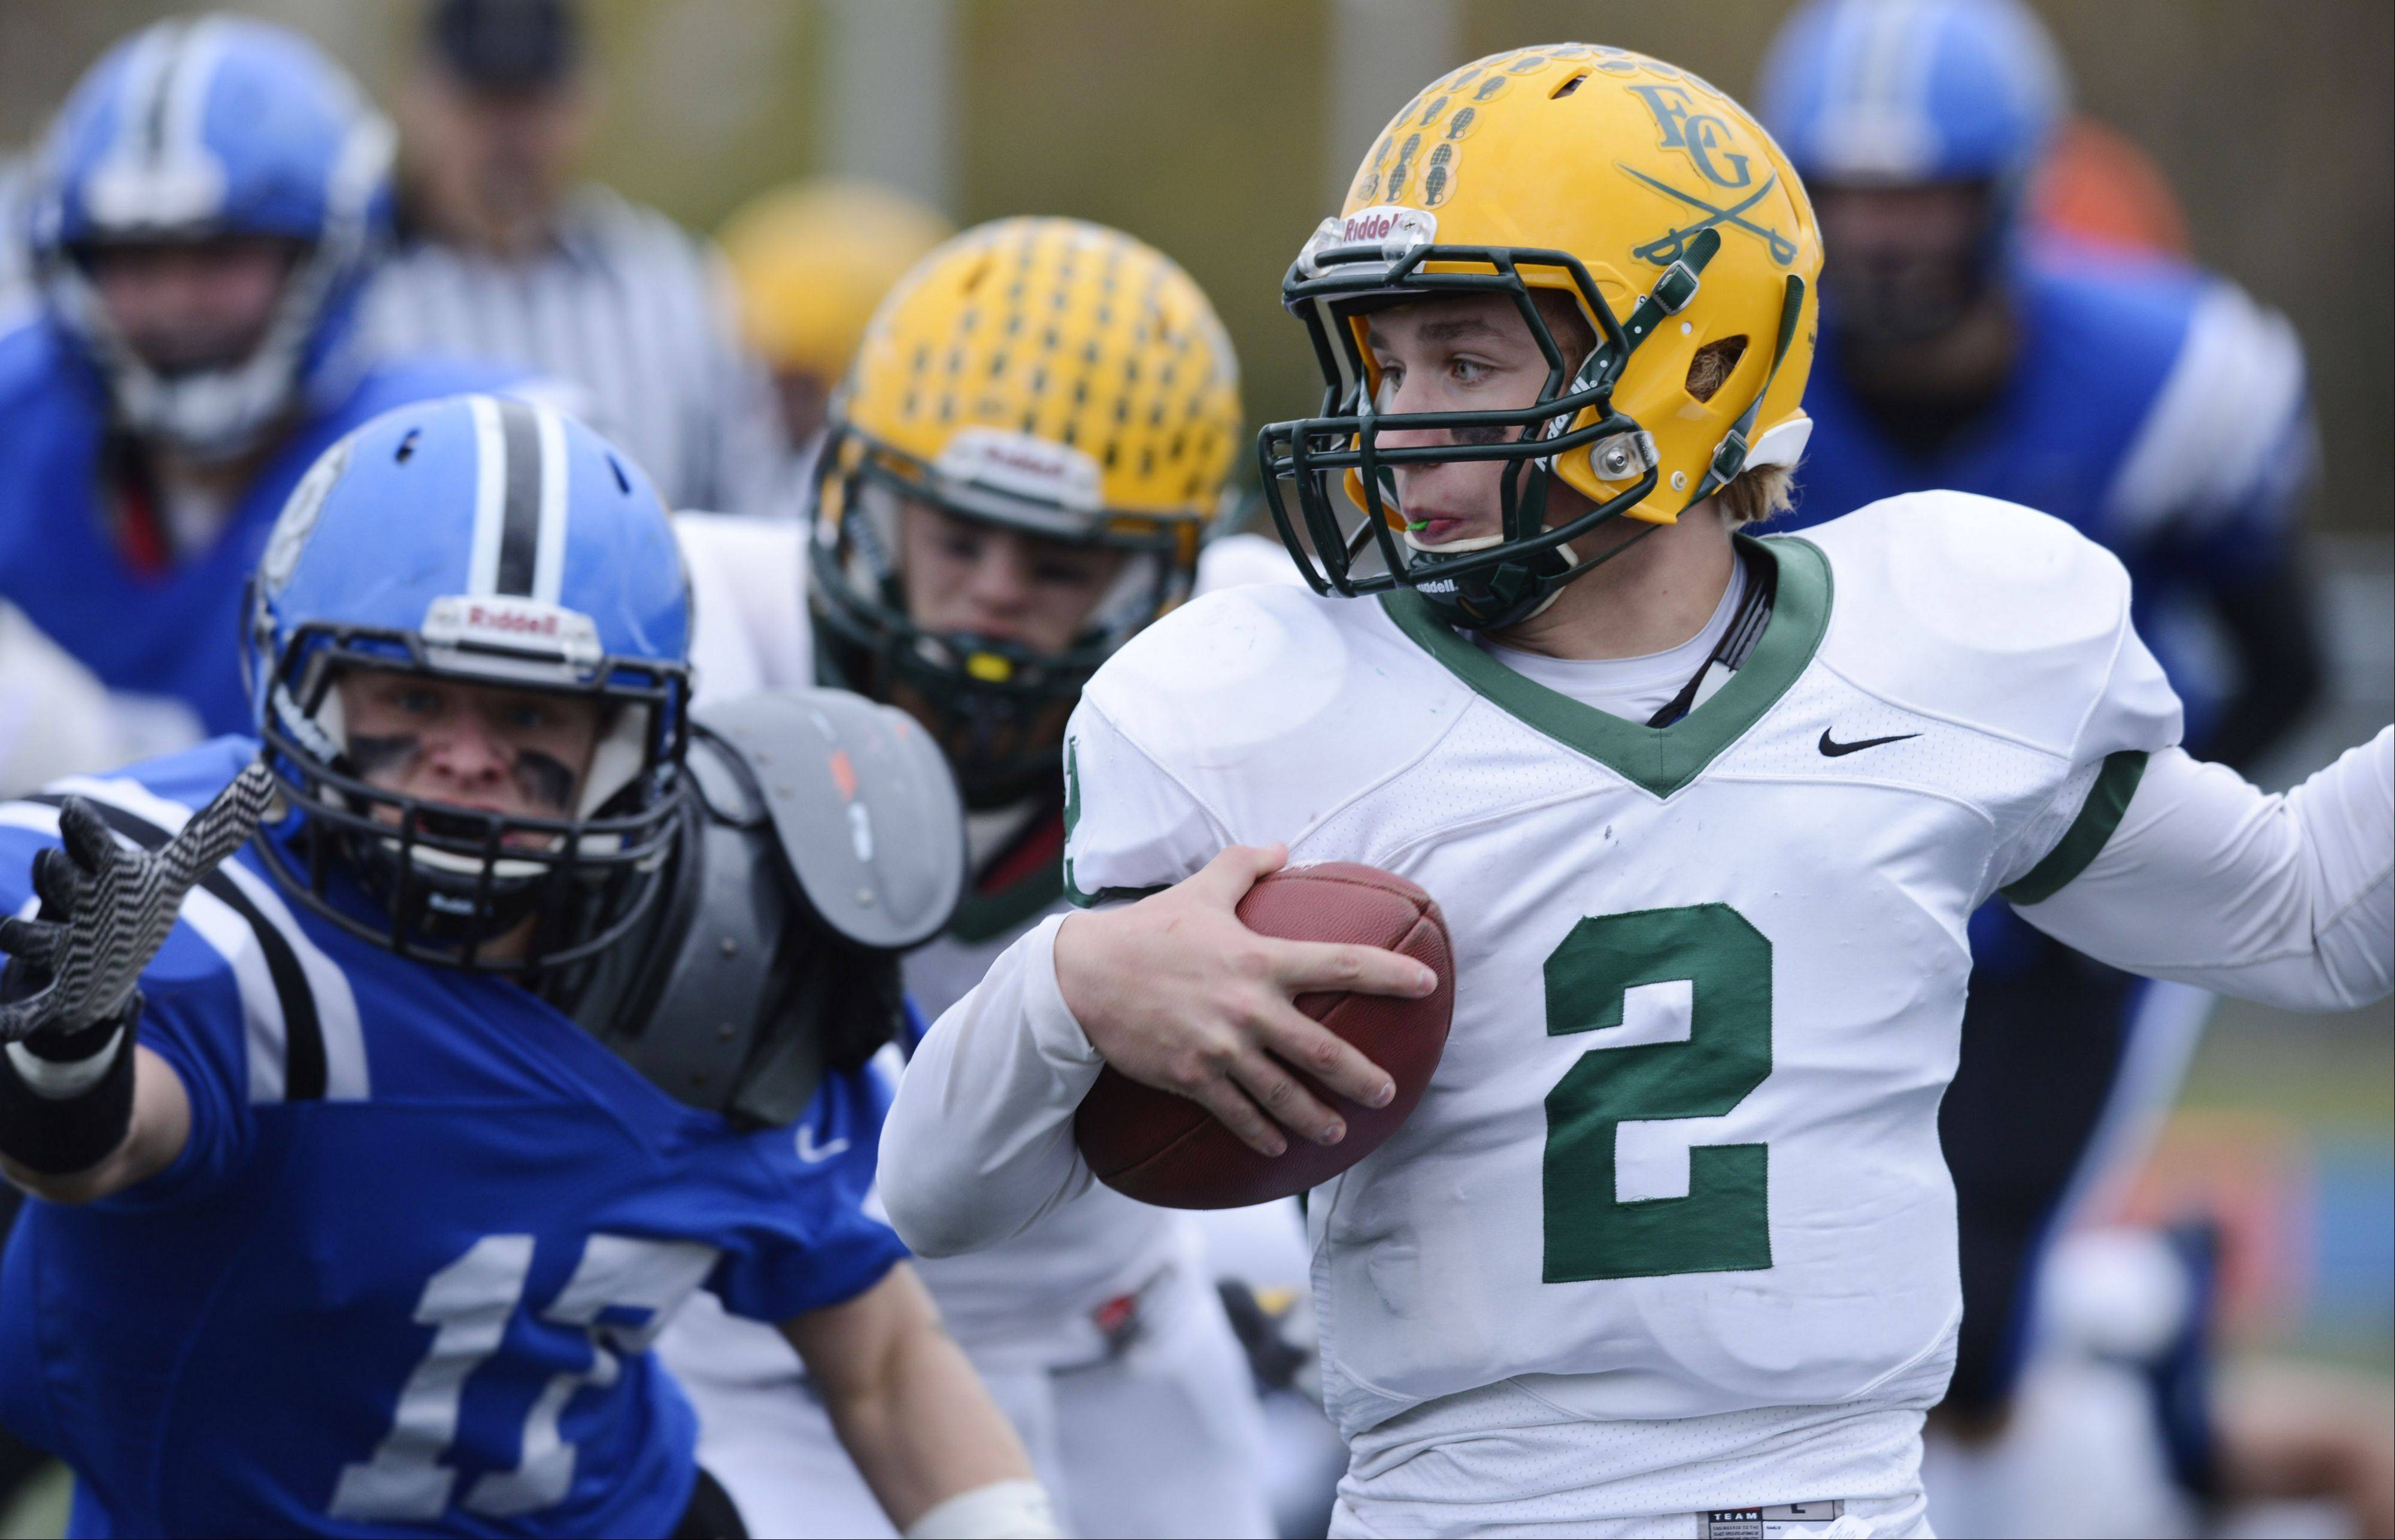 Elk Grove's quarterback Adam O'Malley carries the ball as Lake Zurich's Anthony Baca closes in during Saturday's Class 7A playoff game.